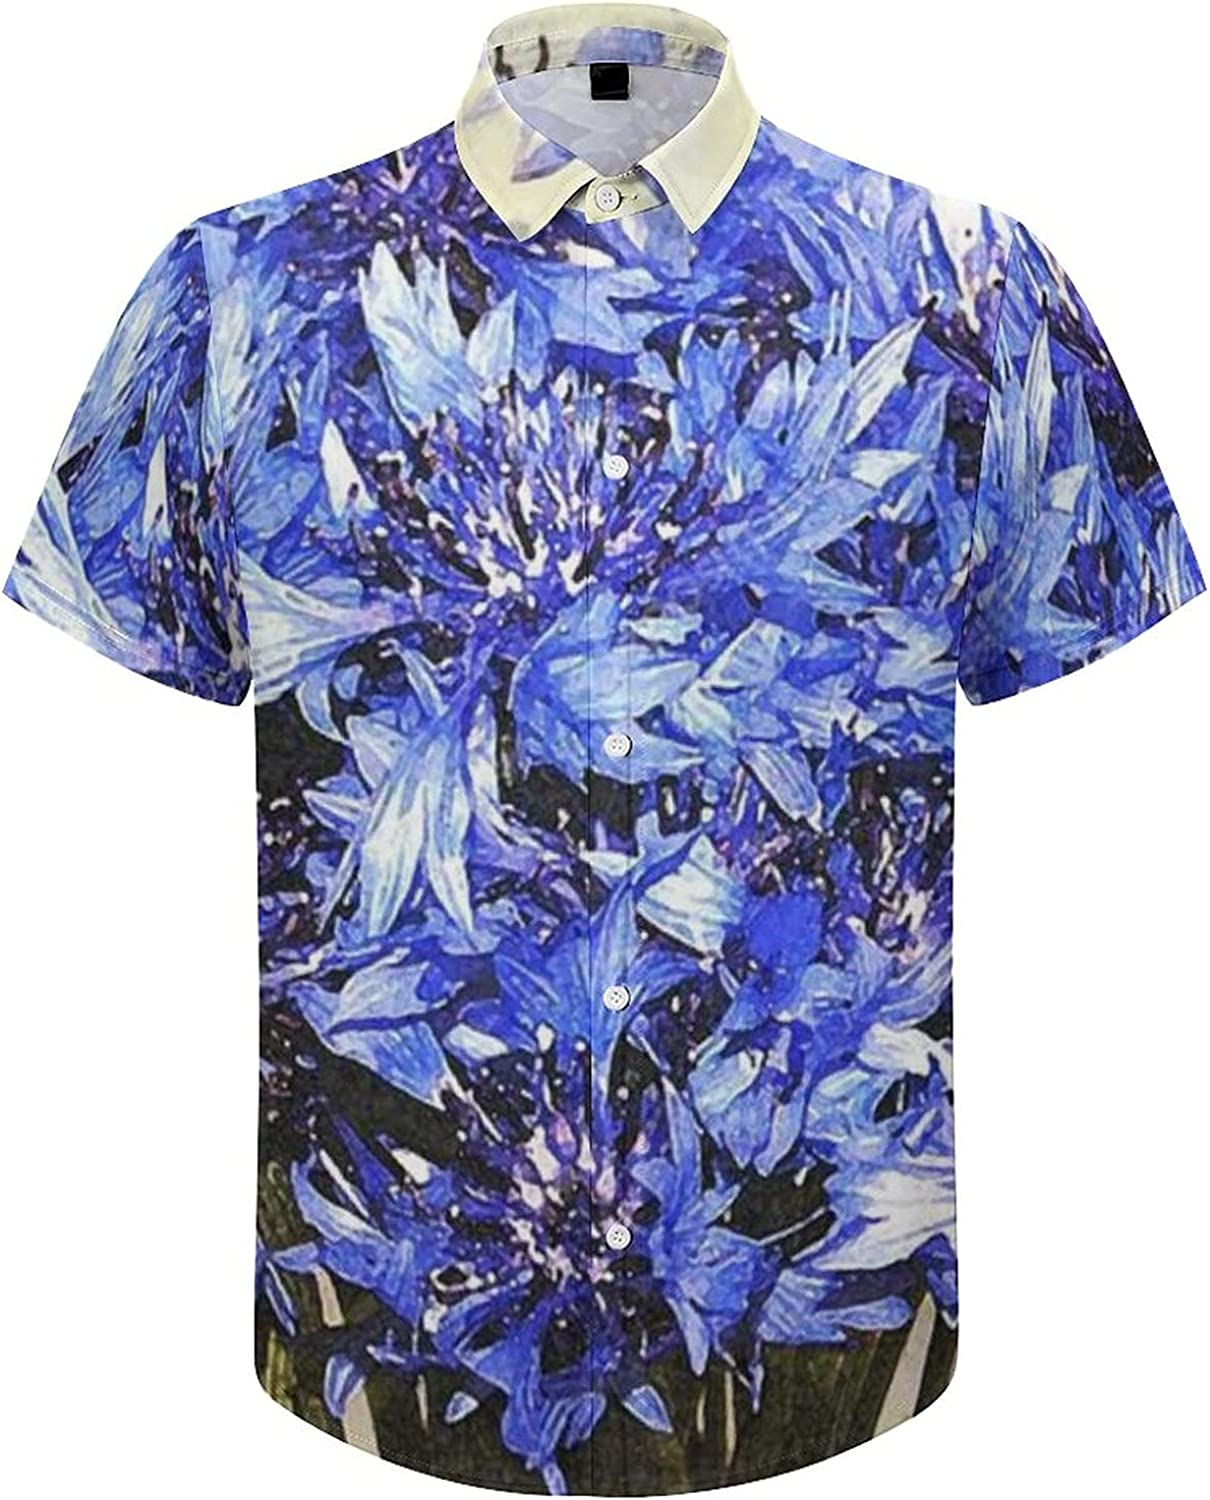 Men's Regular-Fit Short-Sleeve Printed Party Holiday Shirt Watercolor Purple Floral